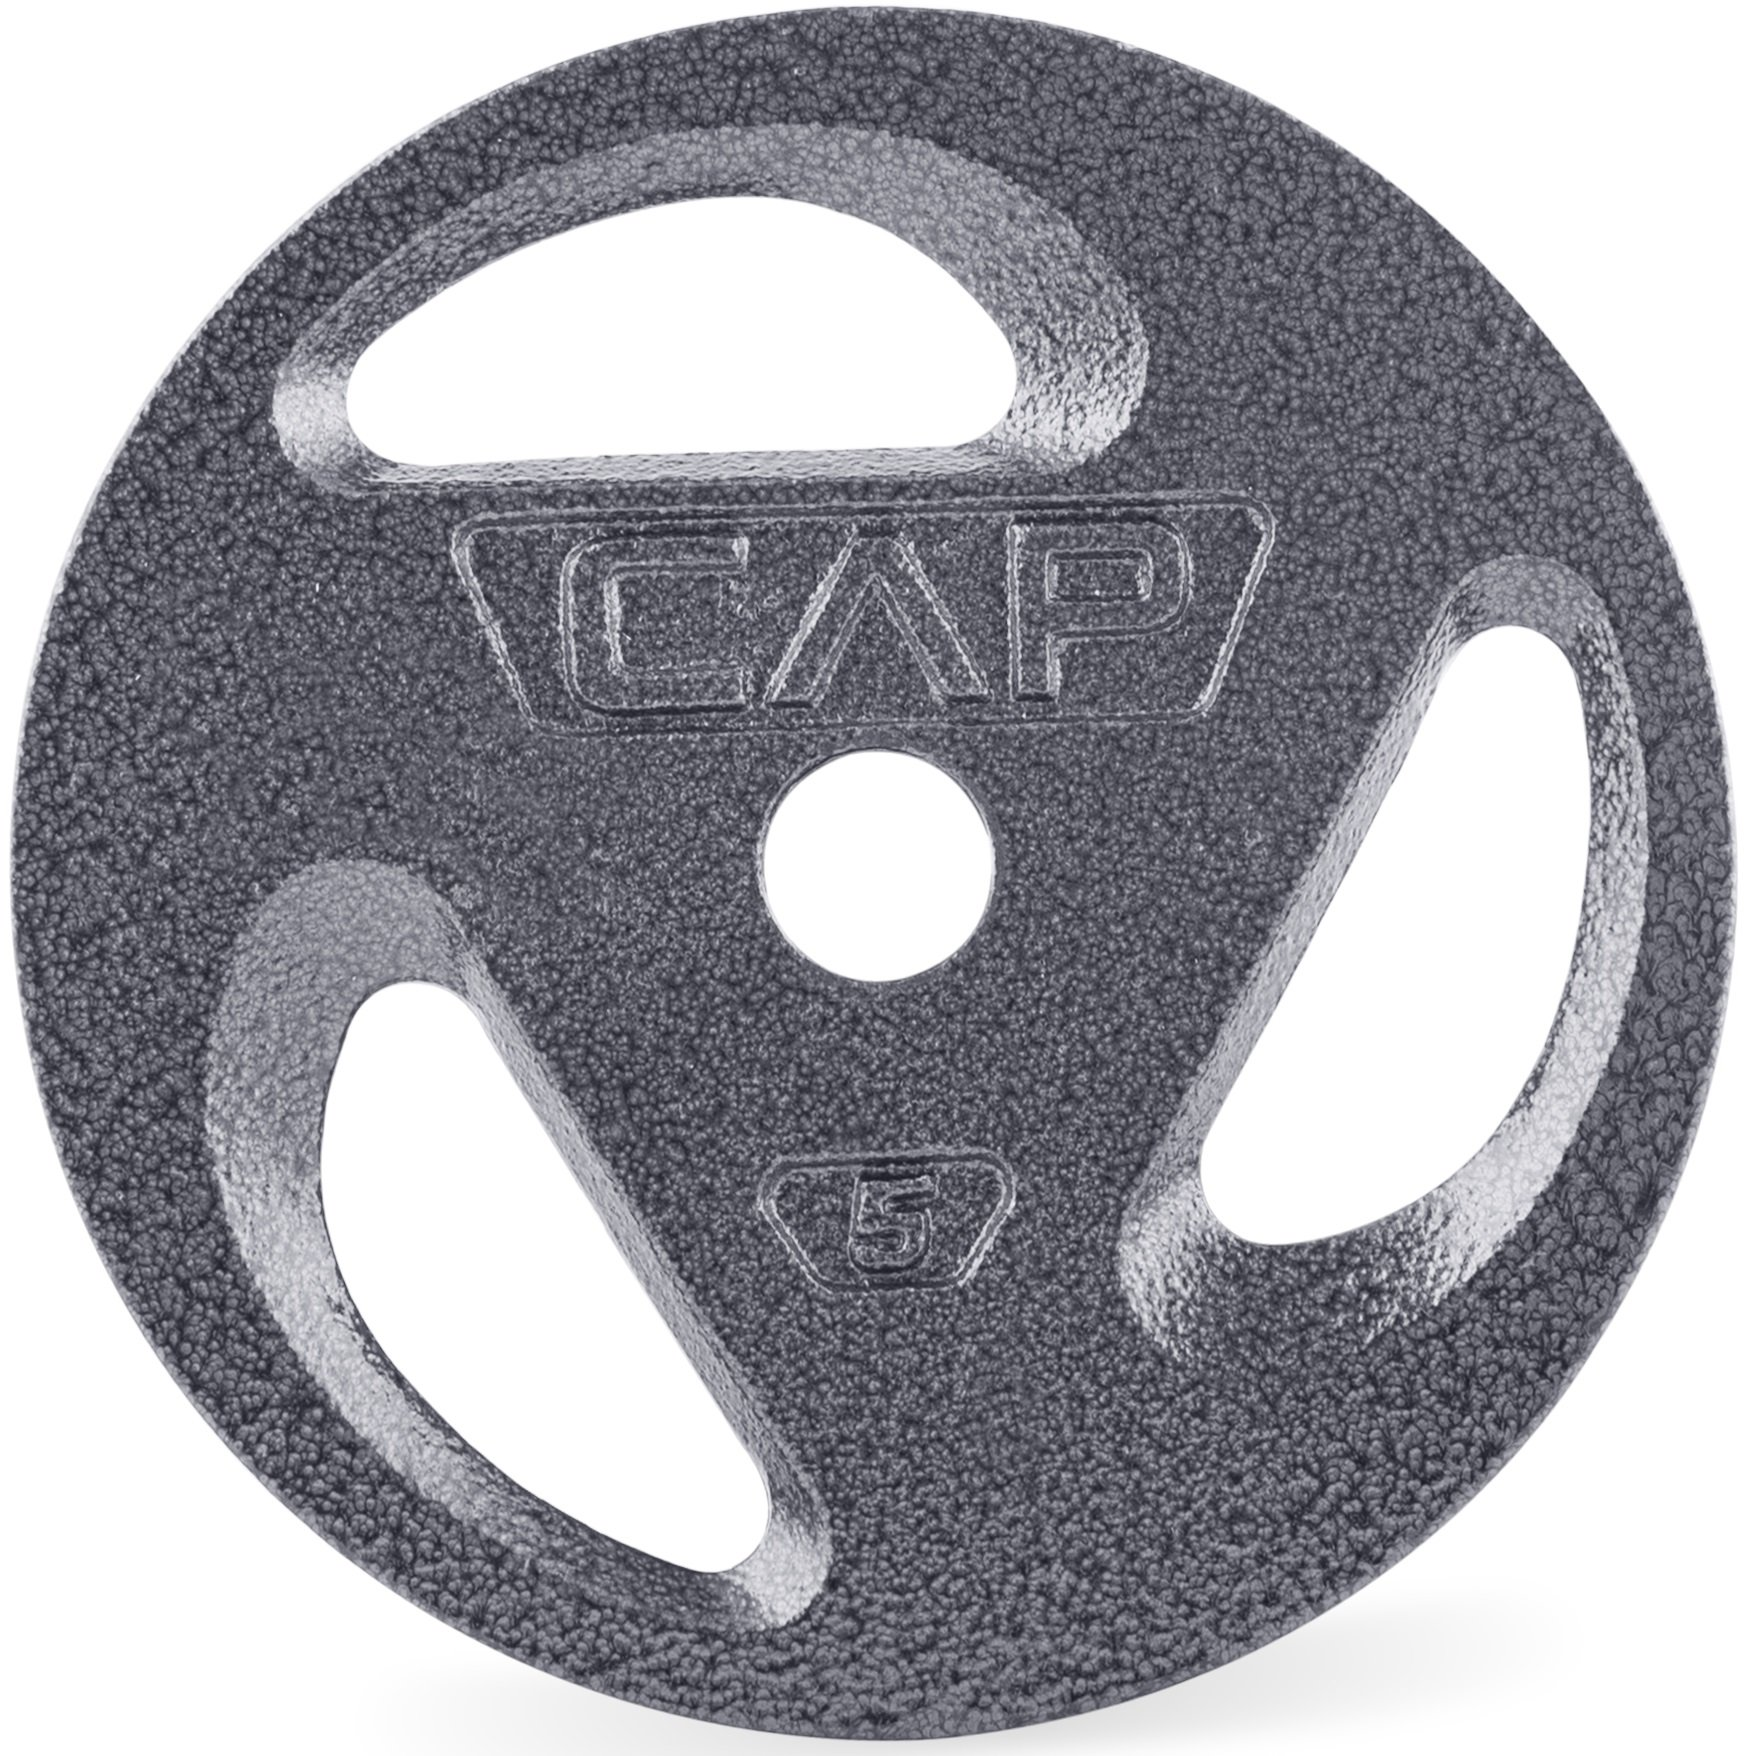 CAP Barbell Standard 1-Inch Grip Plates, Single, 5 Pound